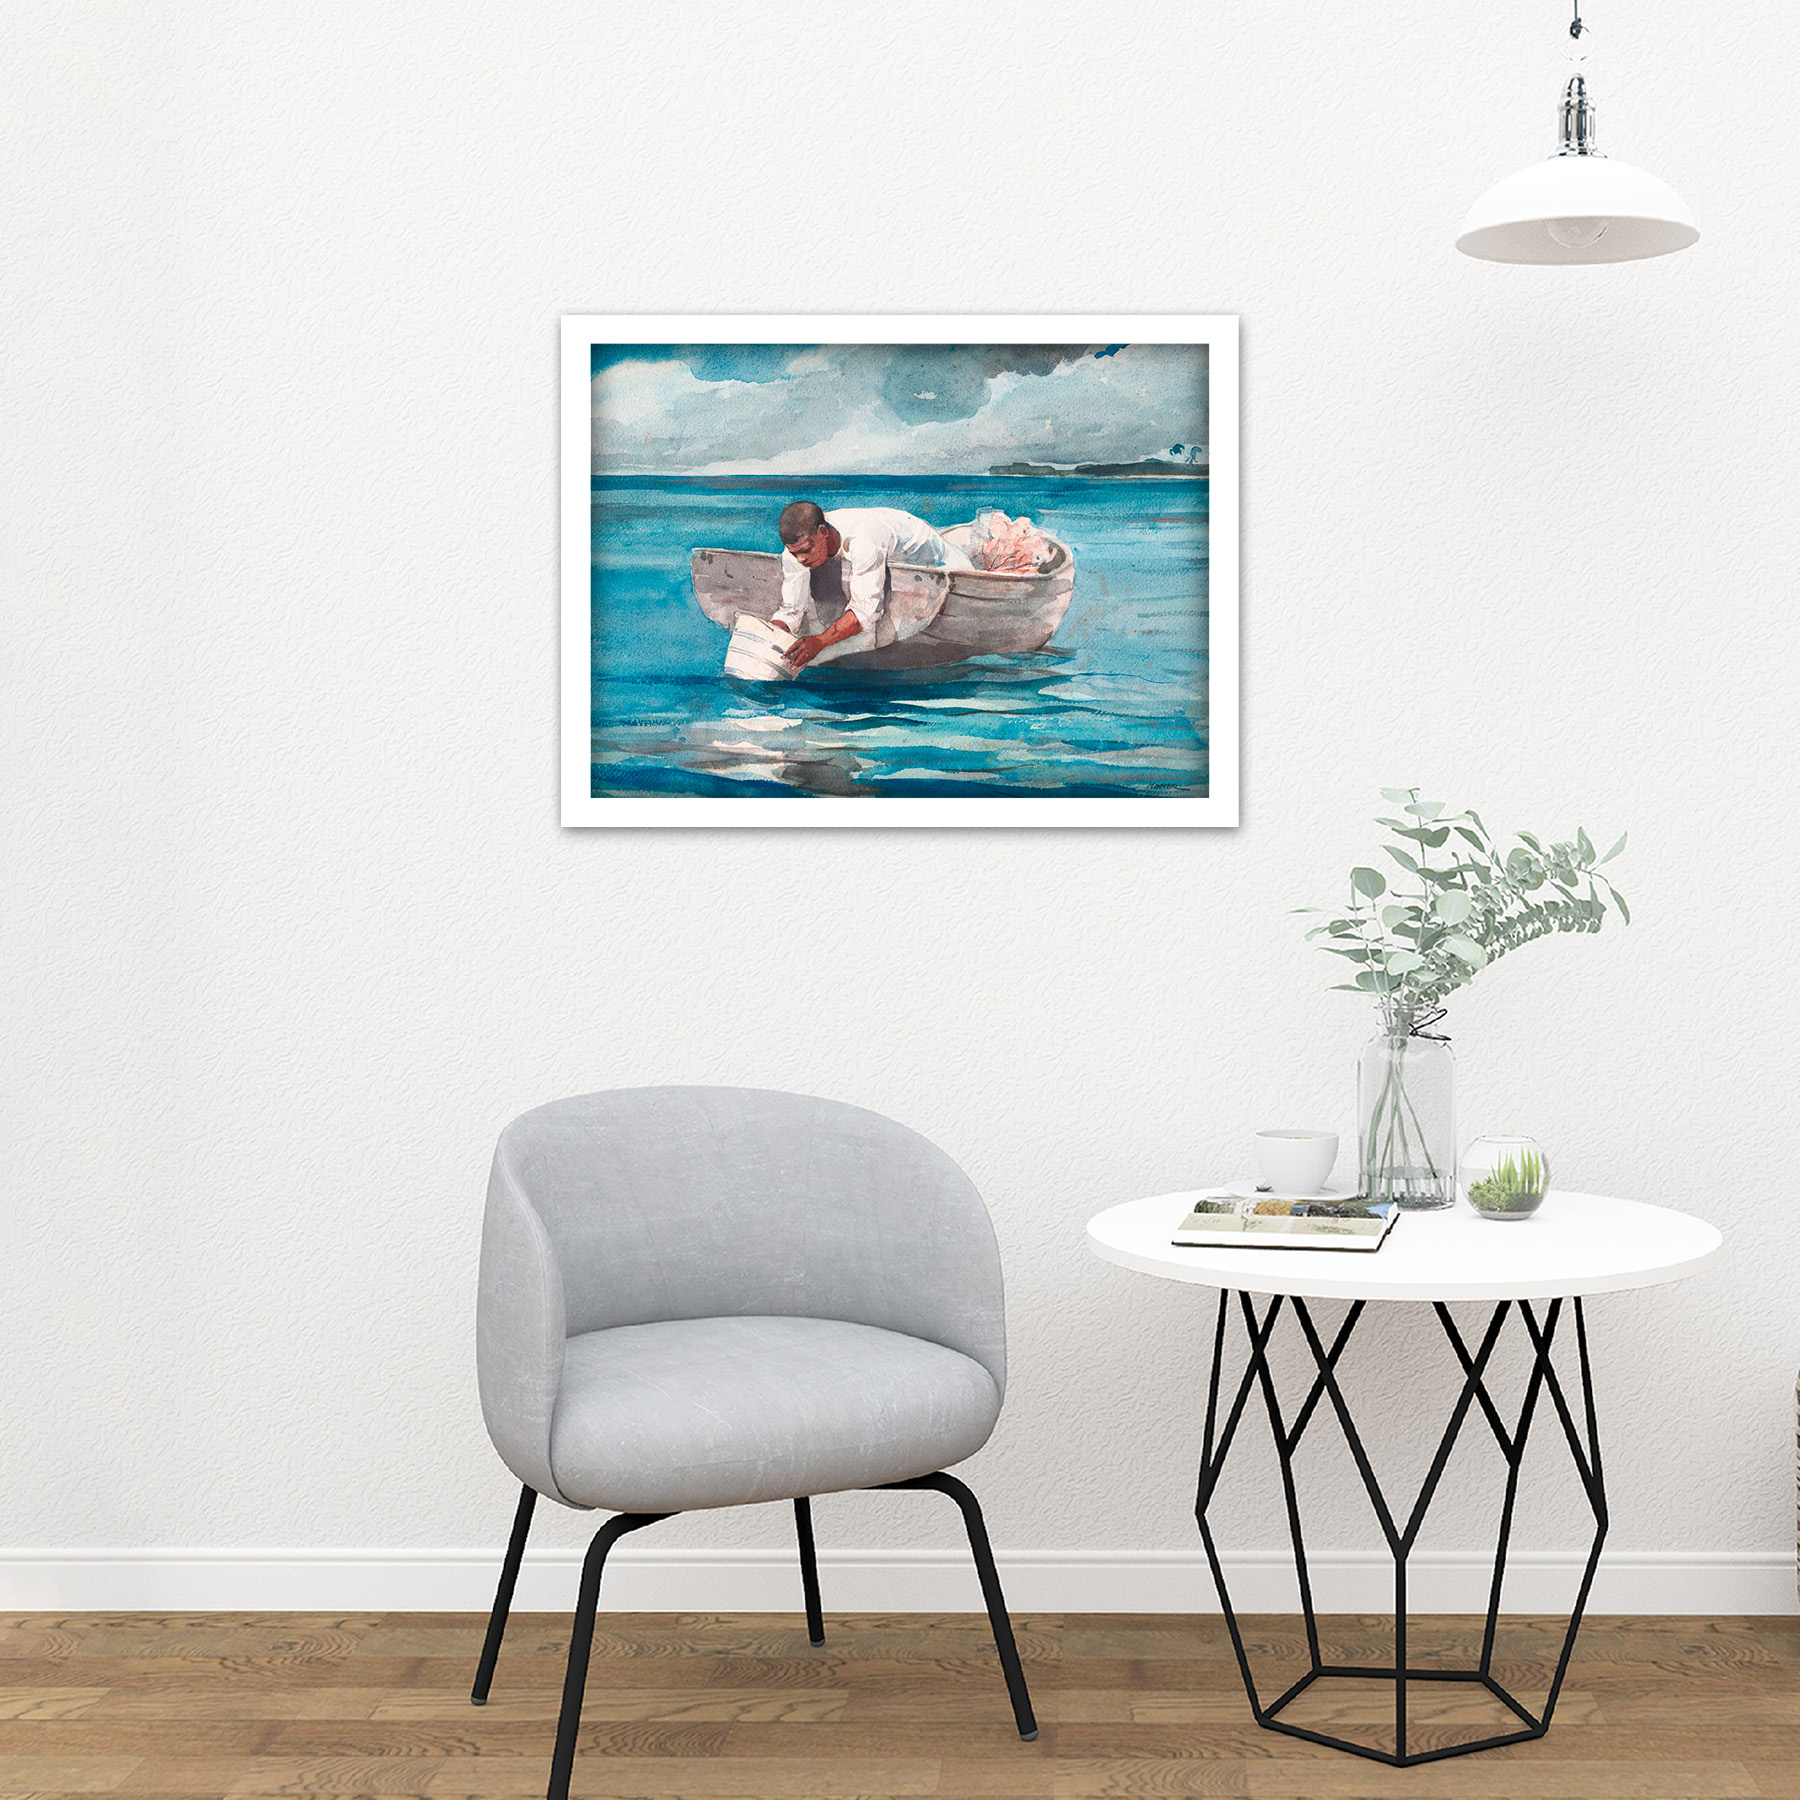 Homer-The-Water-Fan-Boat-Sea-Blue-Painting-Large-Framed-Art-Print thumbnail 23